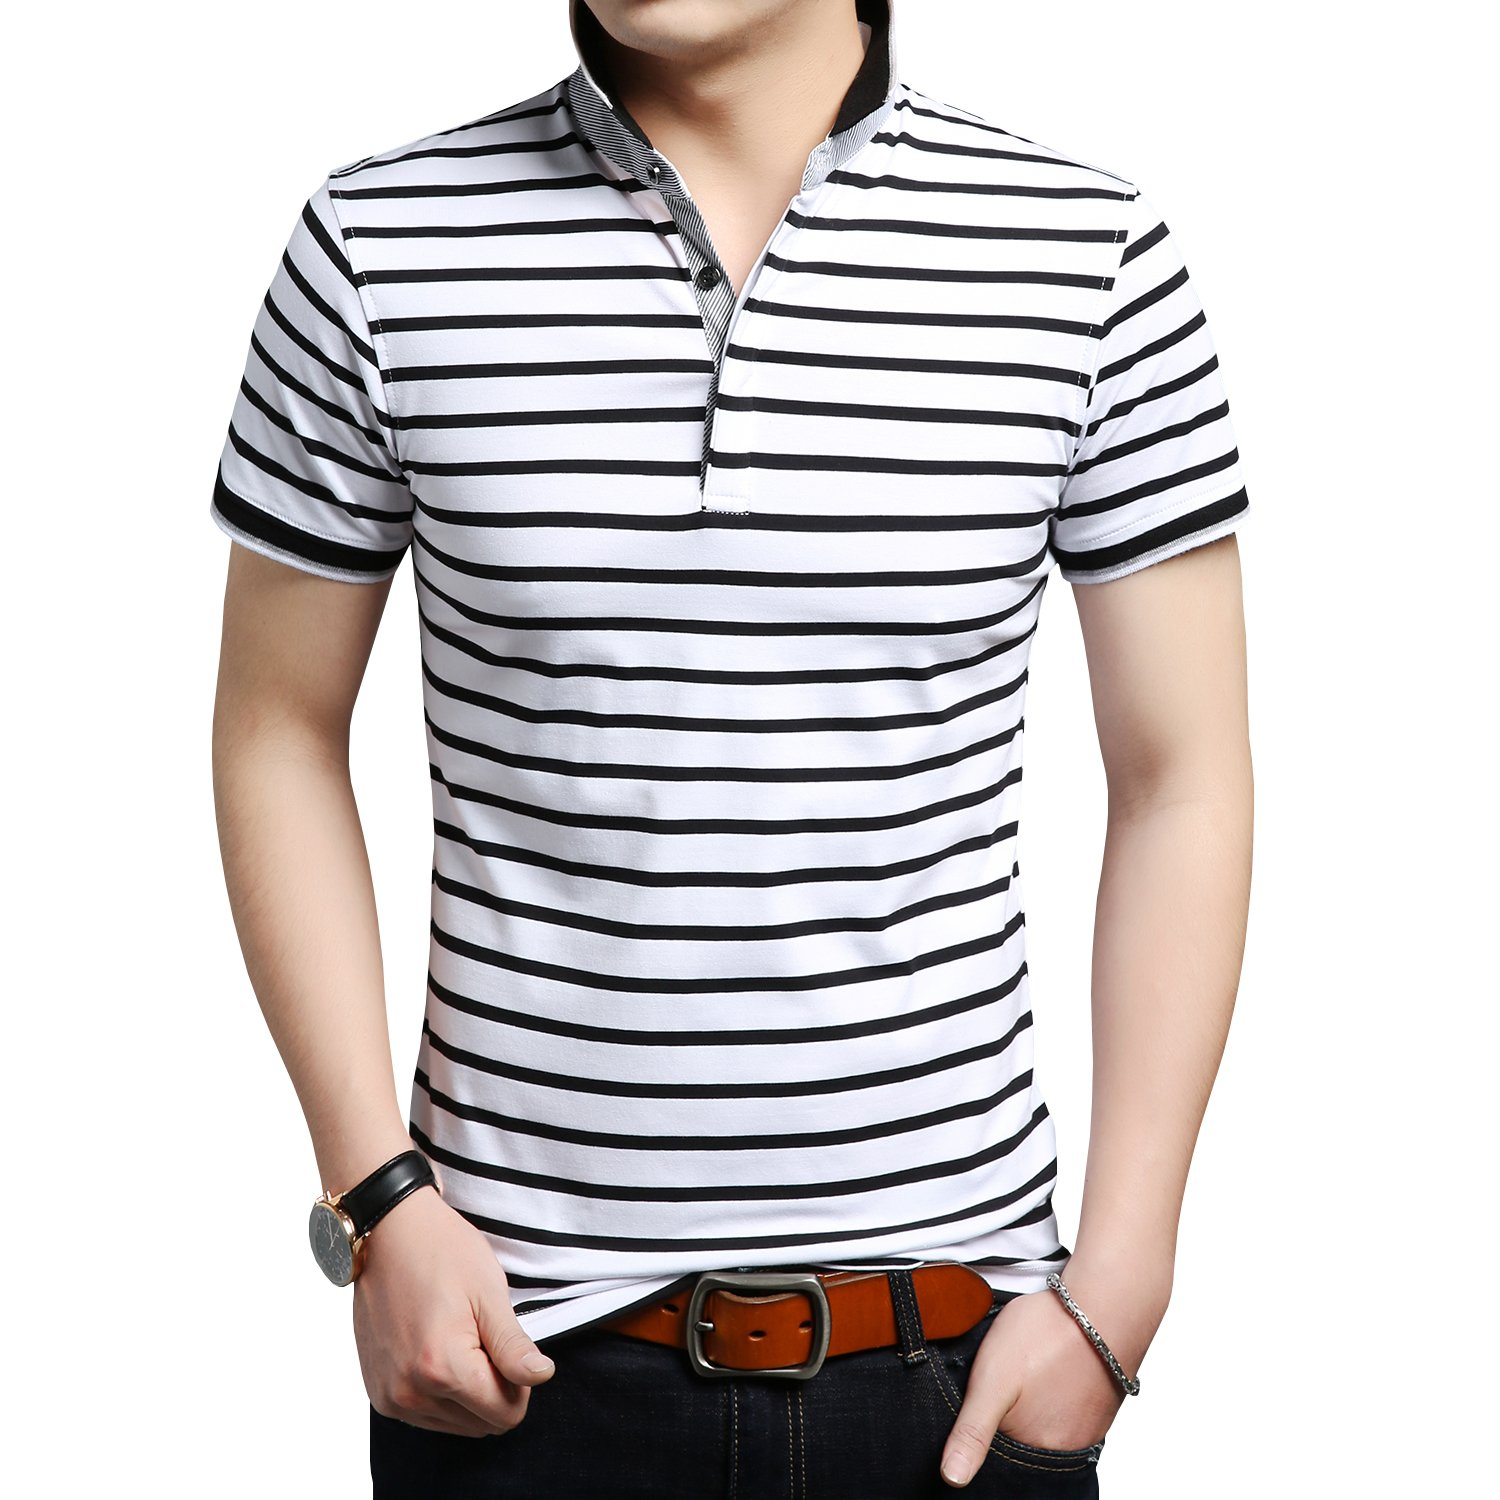 Womleys Mens Casual Striped Slim Fit Short Sleeve Polo Shirts Collared T Shirt